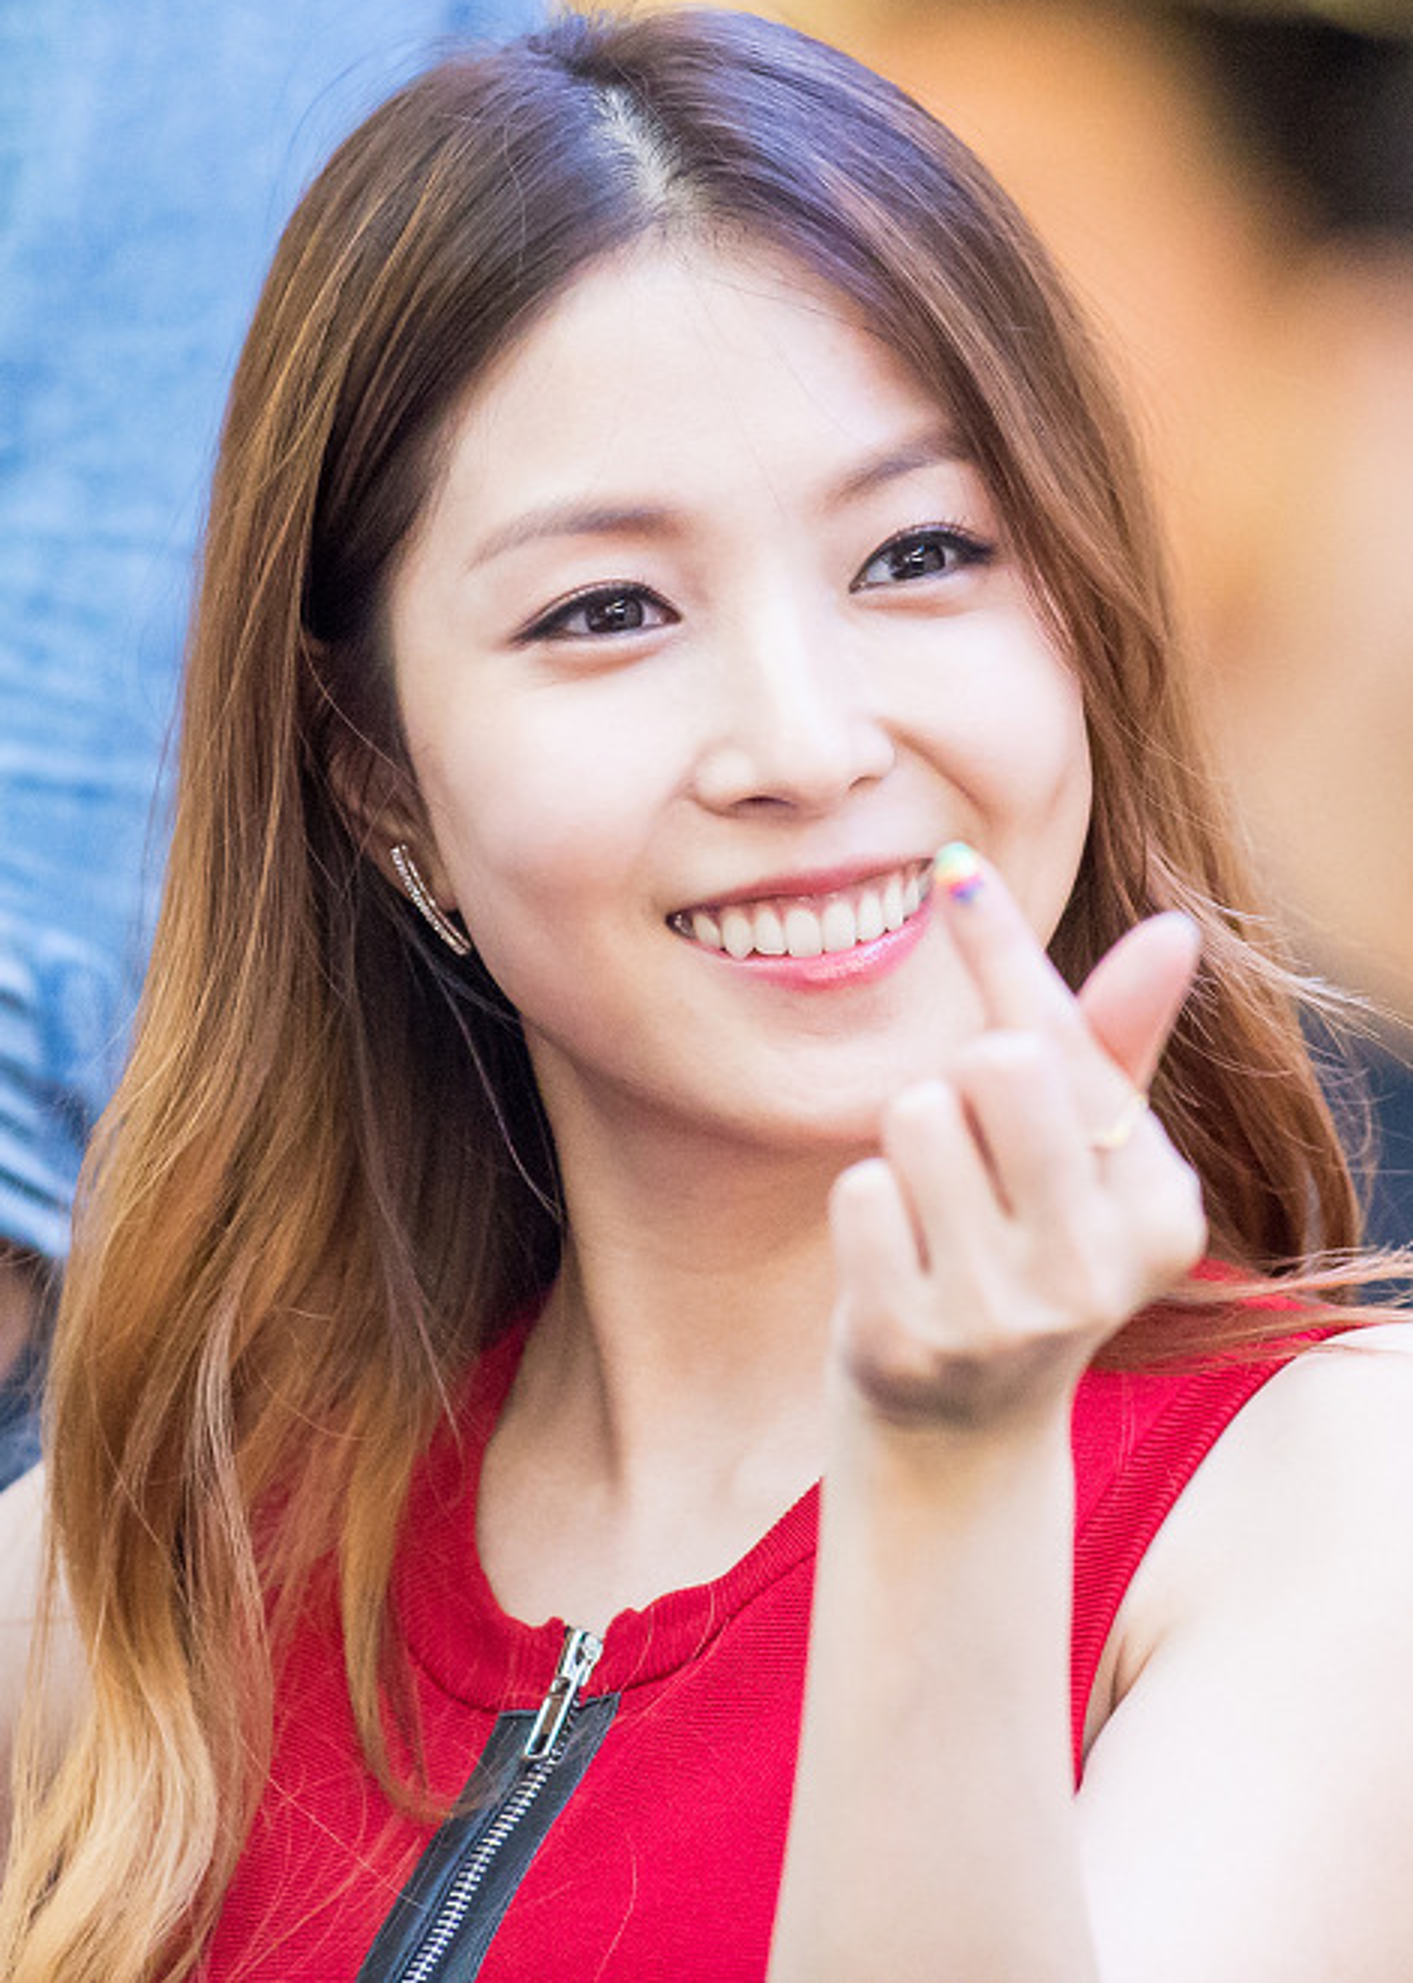 BoA_at_a_fansigning_event_on_May_24,_2015_(1)